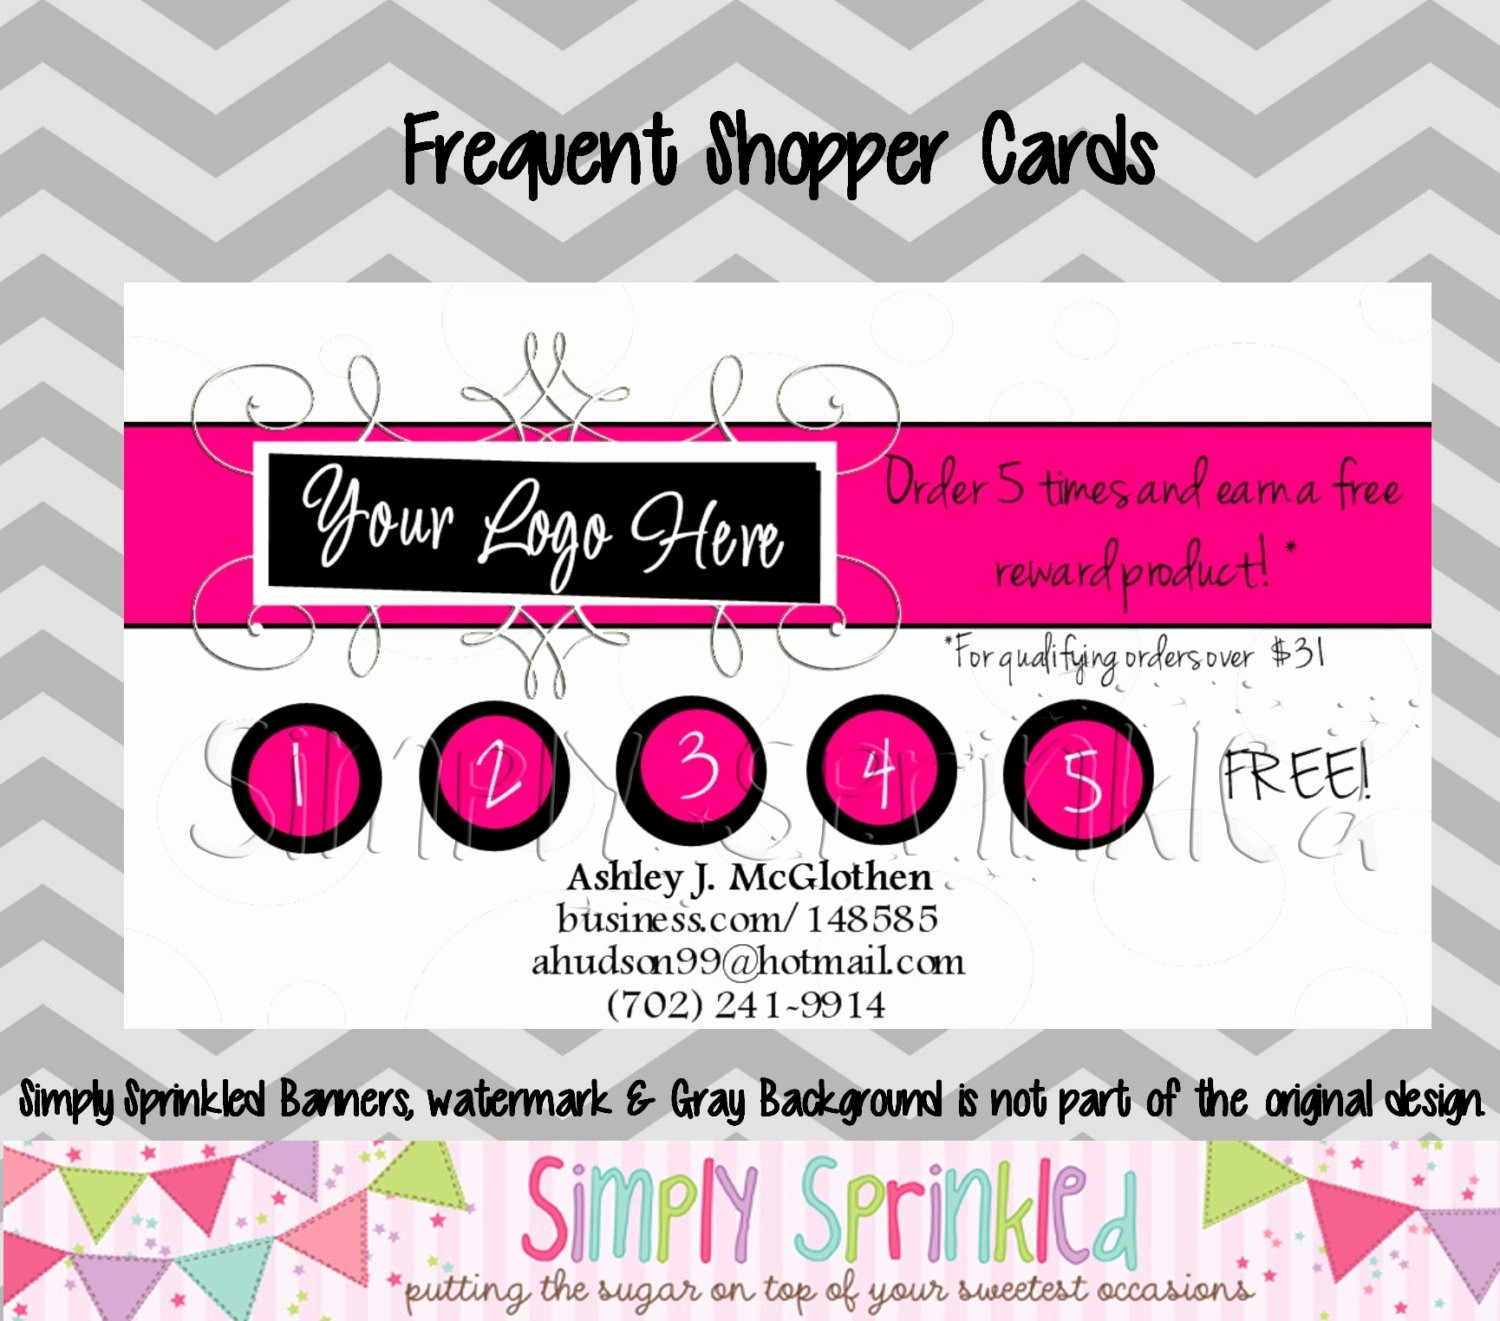 Mary Kay Business Cards Templates Free | Beertest - Free Printable Mary Kay Business Cards